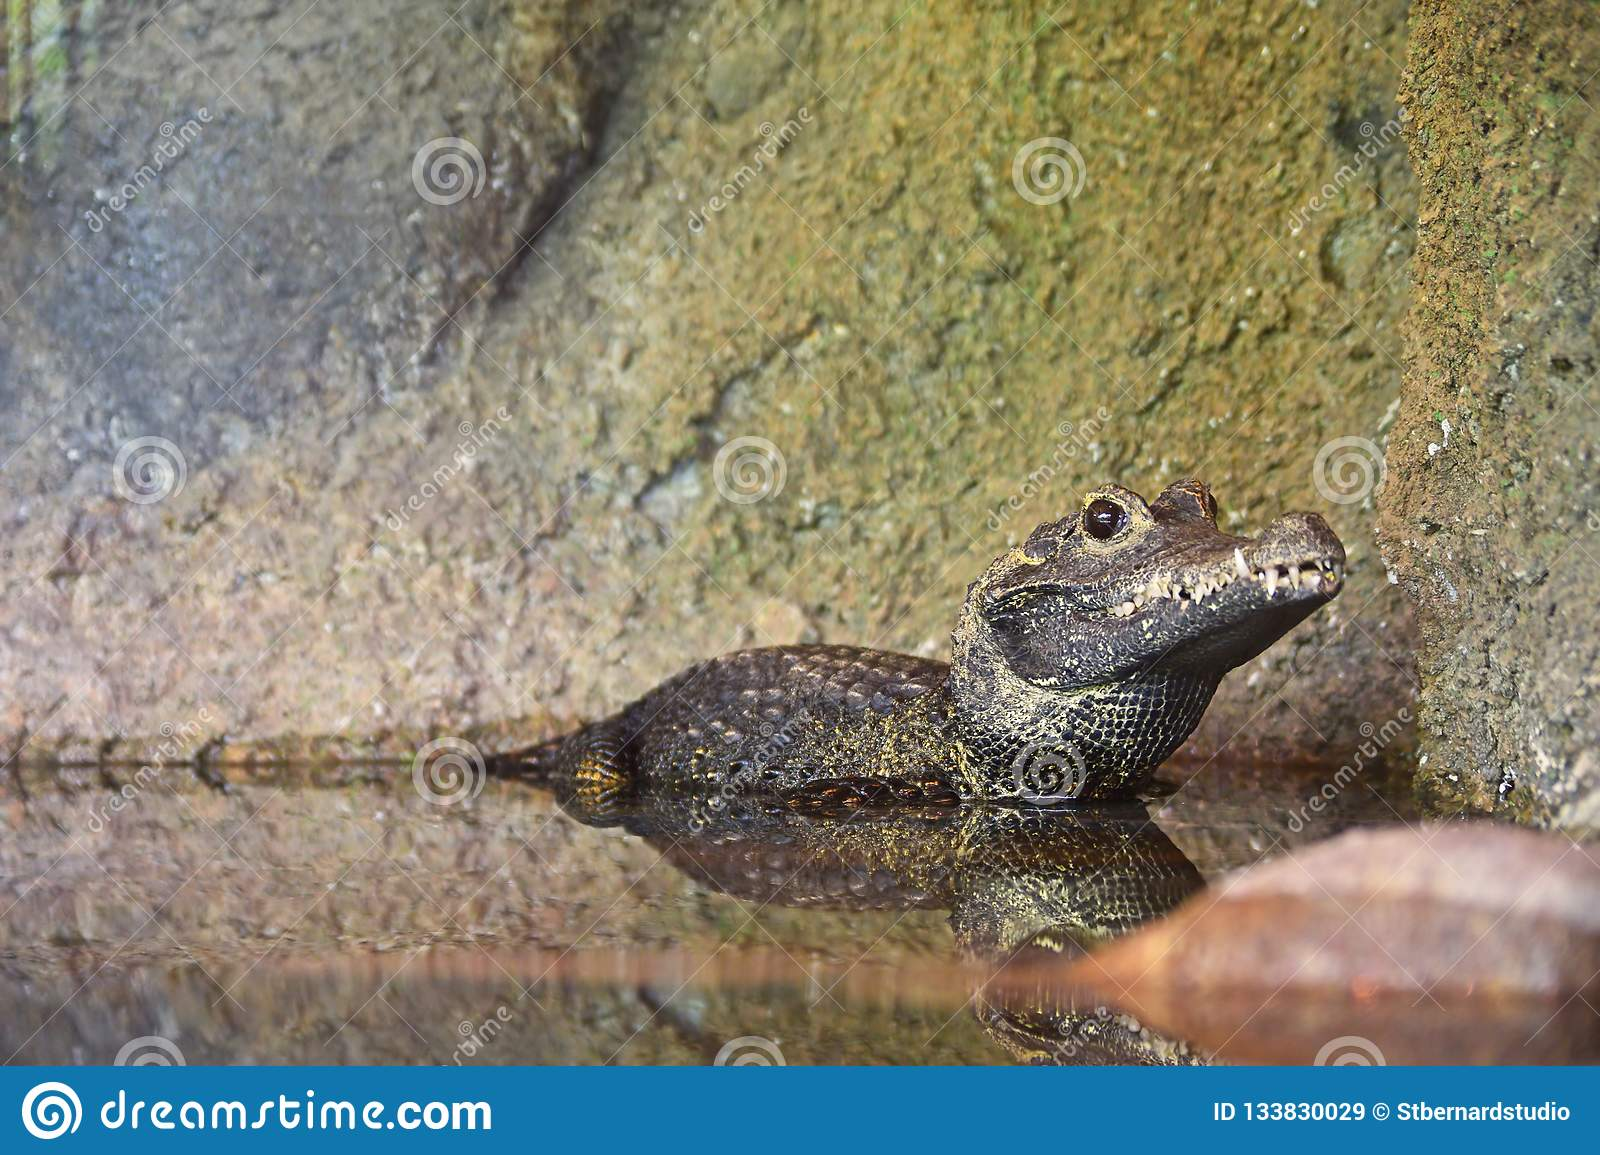 African Dwarf Crocodile resting with half of the body submerged in the water while looking sharp into the lense